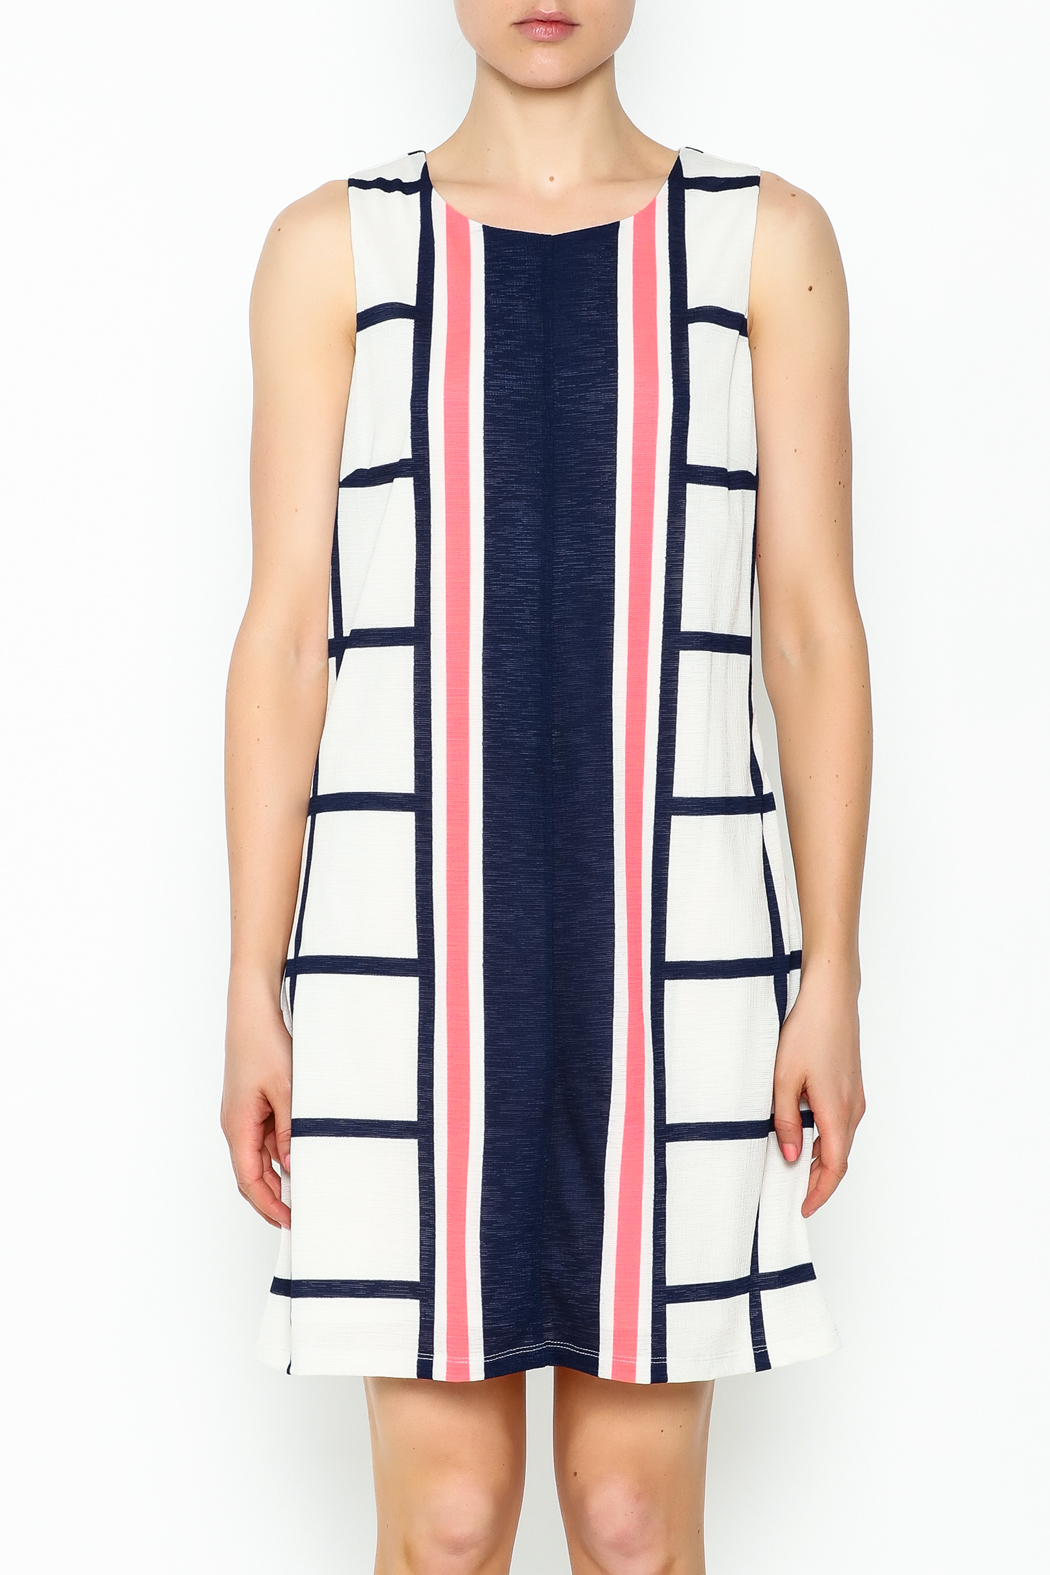 Julie Brown NYC Lanai Dress - Front Full Image